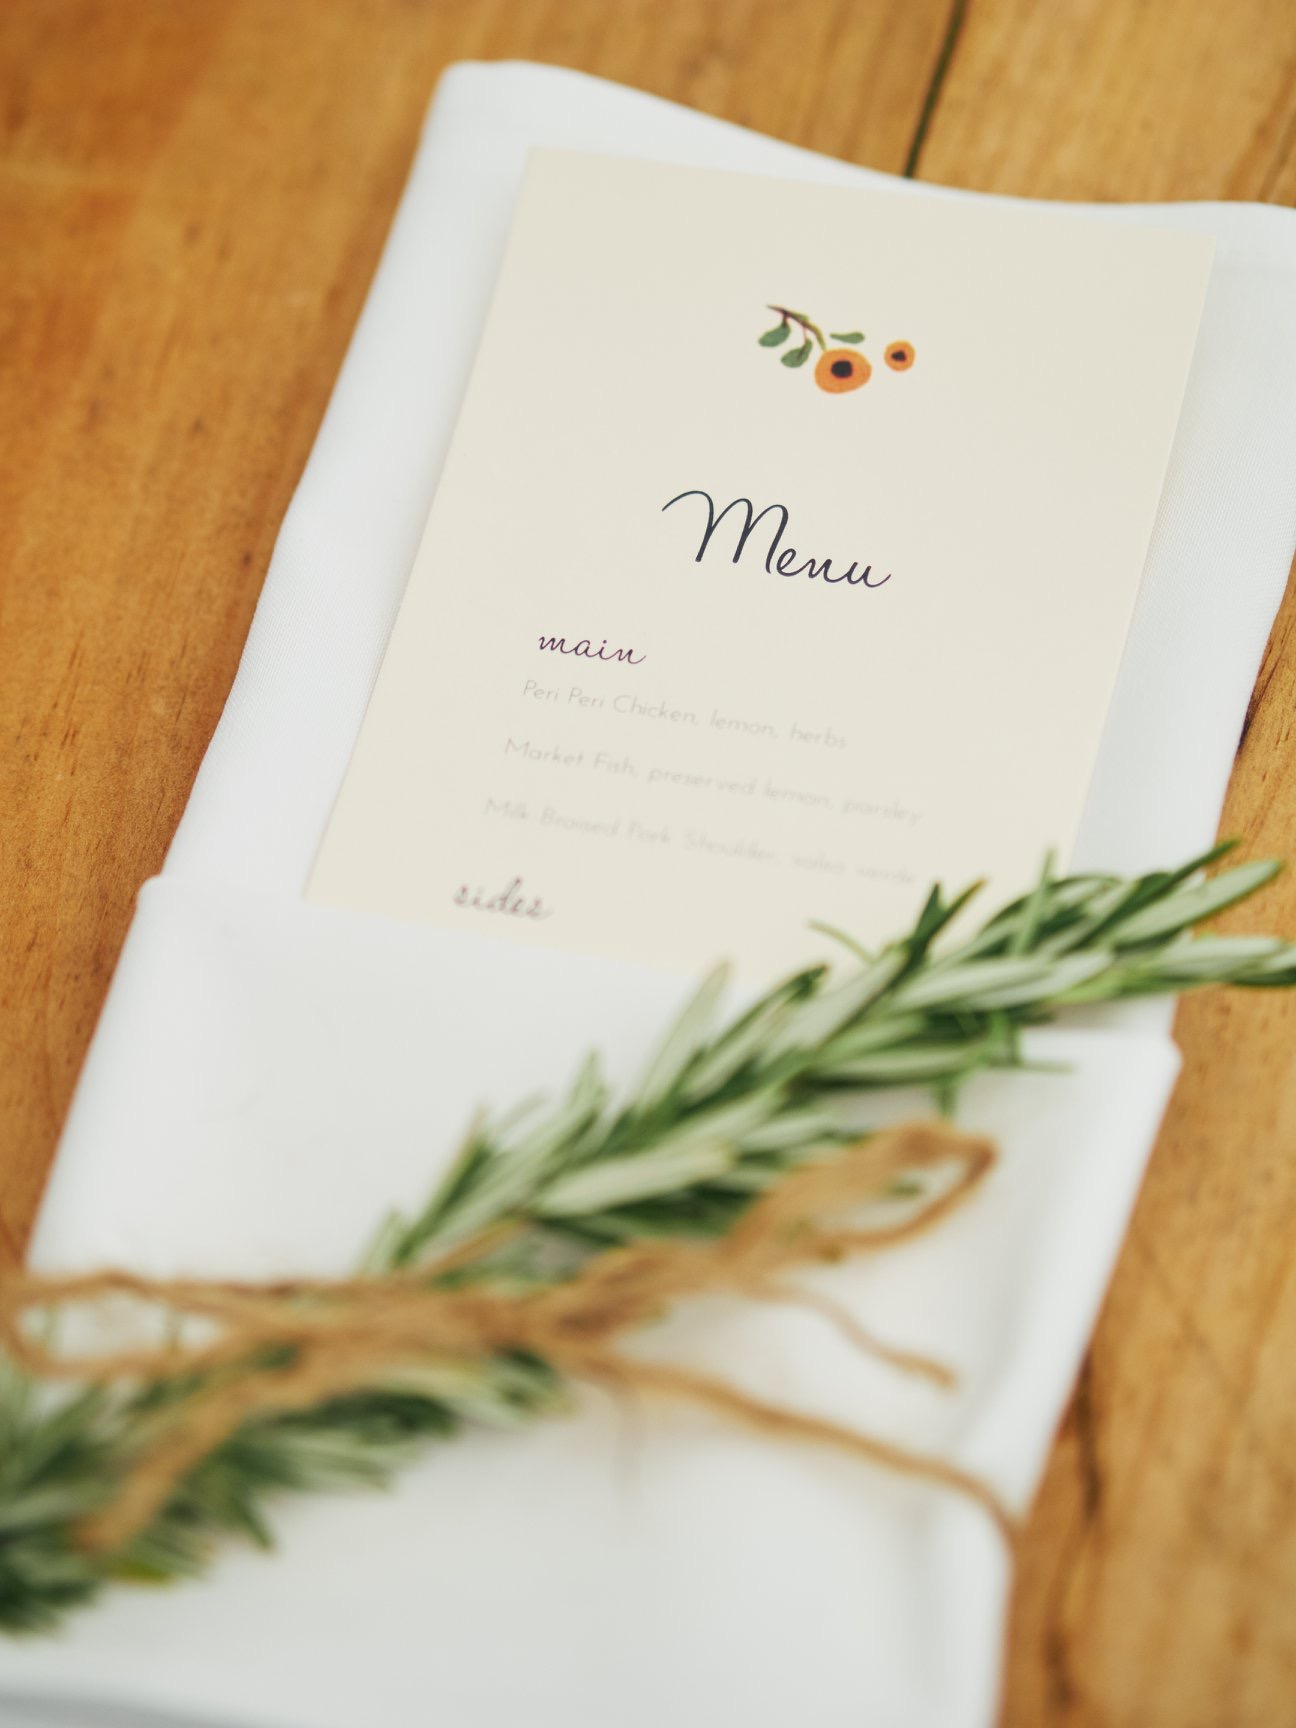 Wedding menu, napkins with a sprig of rosemary tied with hemp - Pearl Weddings & Events